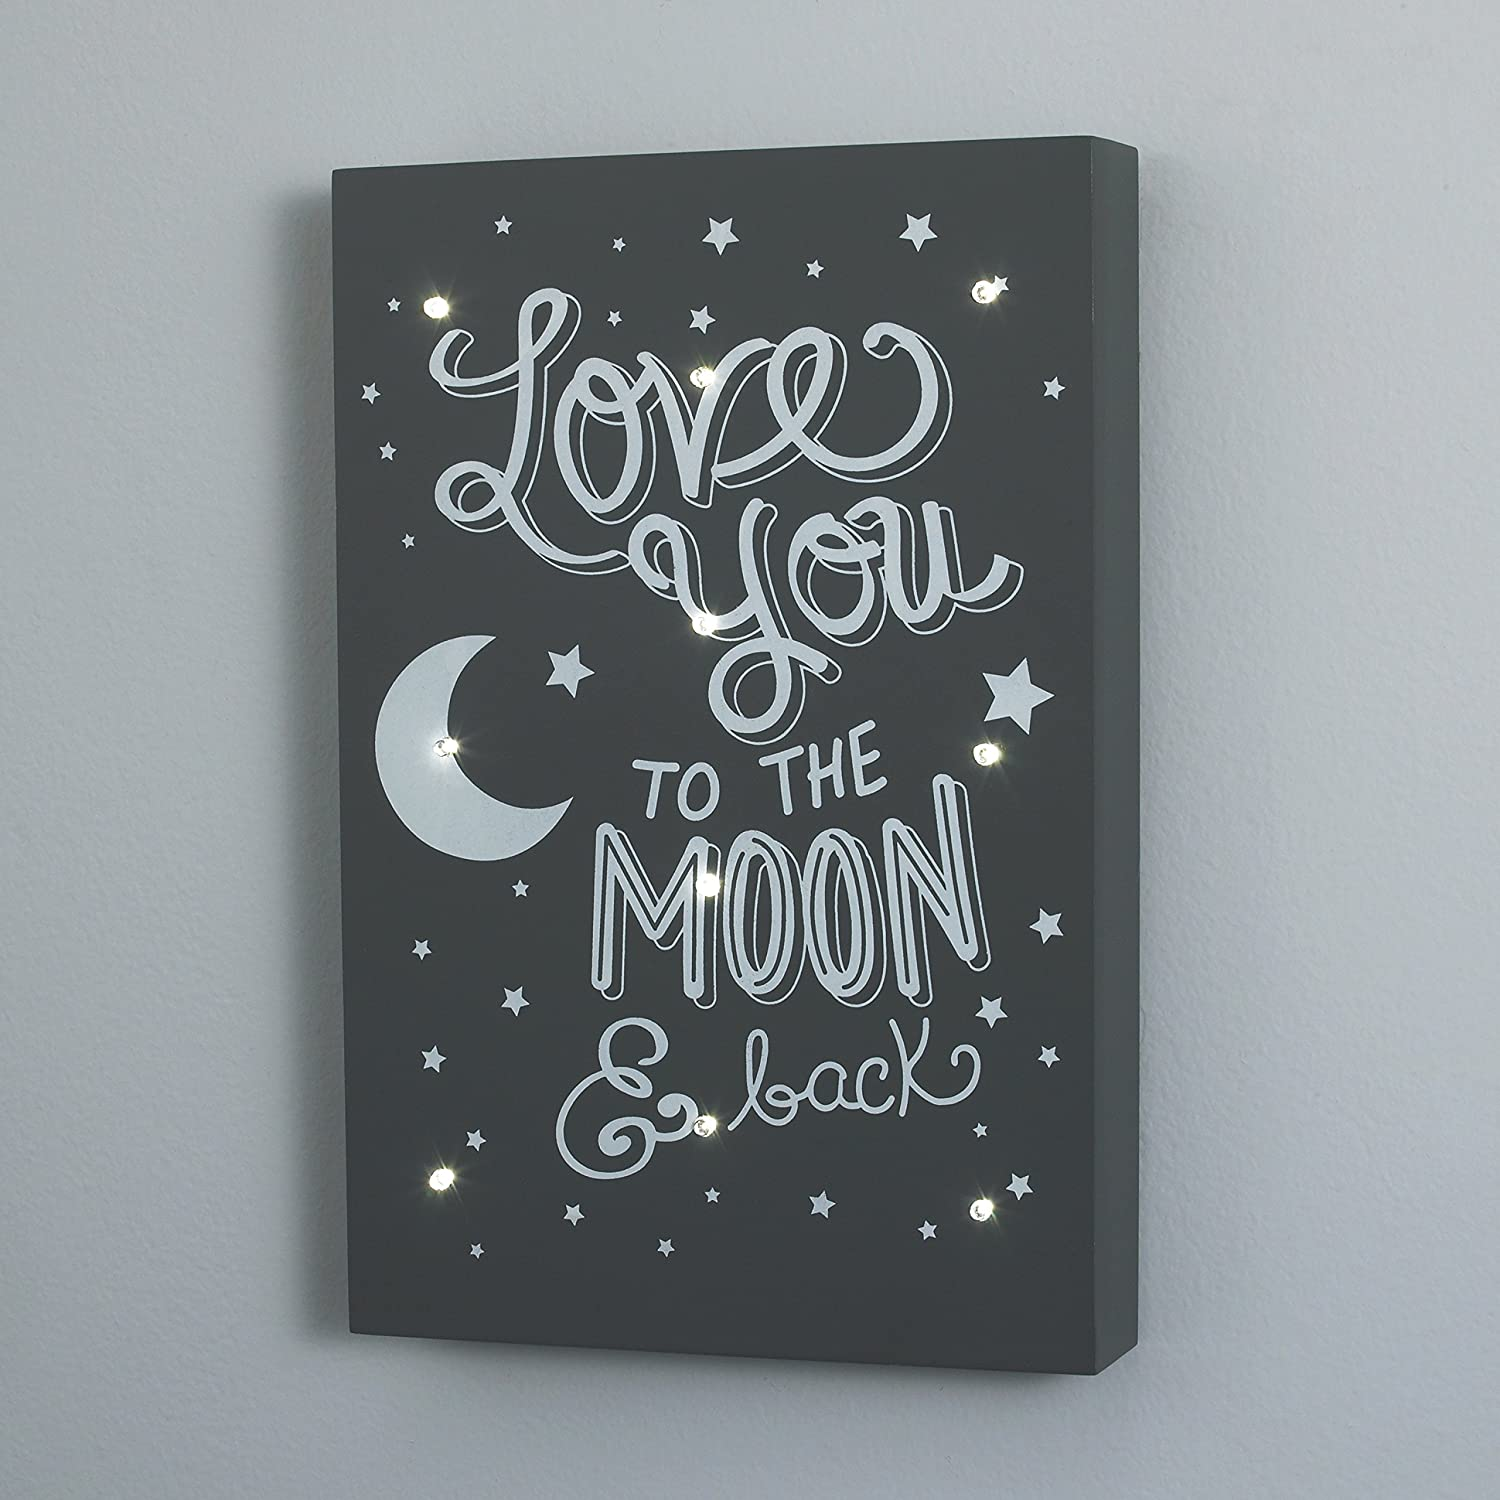 Love You to The Moon and Back Little Love by NoJo Celestial Lighted Wall Decor Gray//White Crown Crafts Inc 2617939